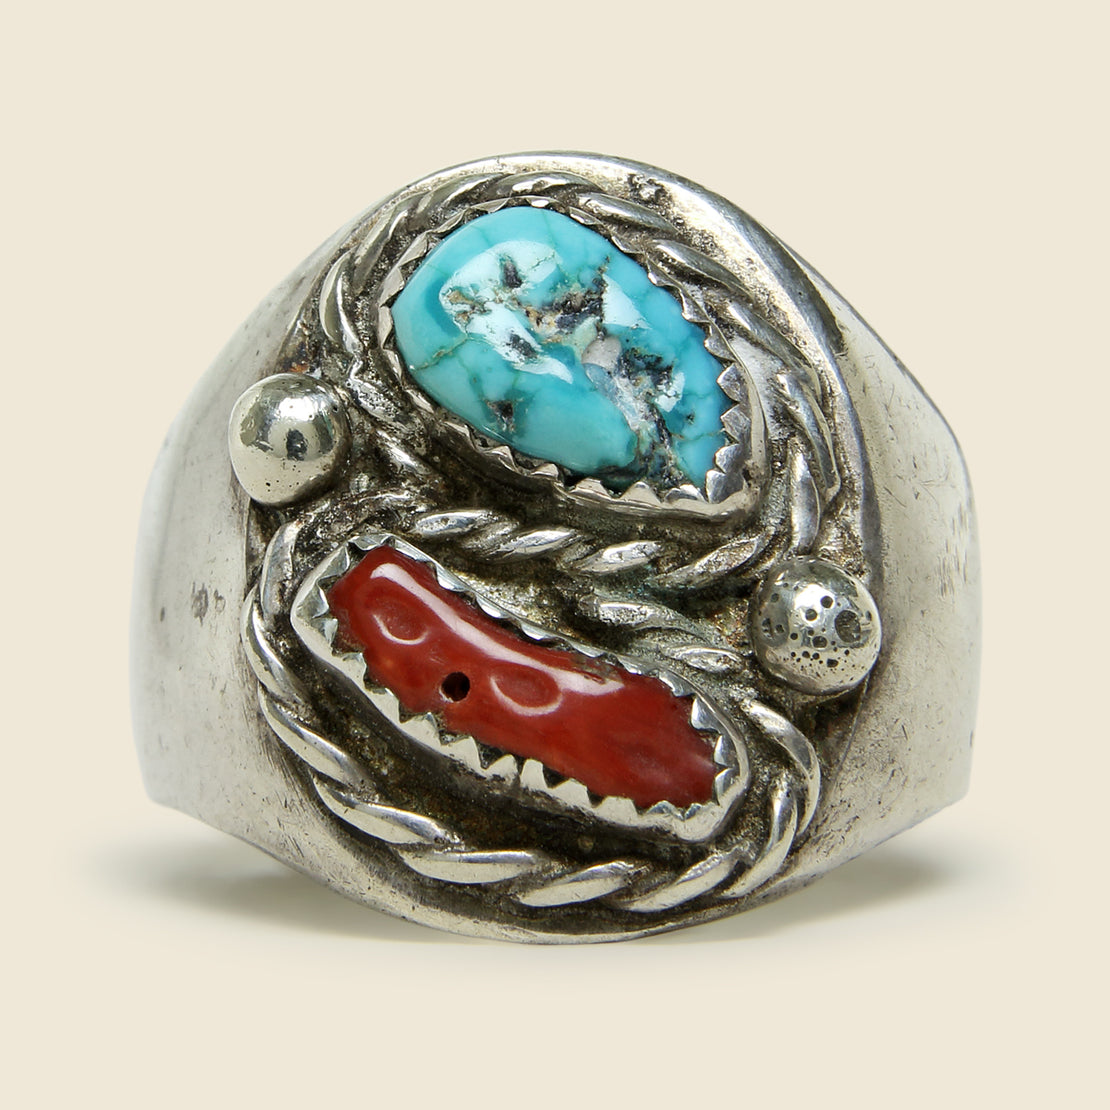 Turquoise & Coral Silver Ring - Vintage - STAG Provisions - One & Done - Jewelry